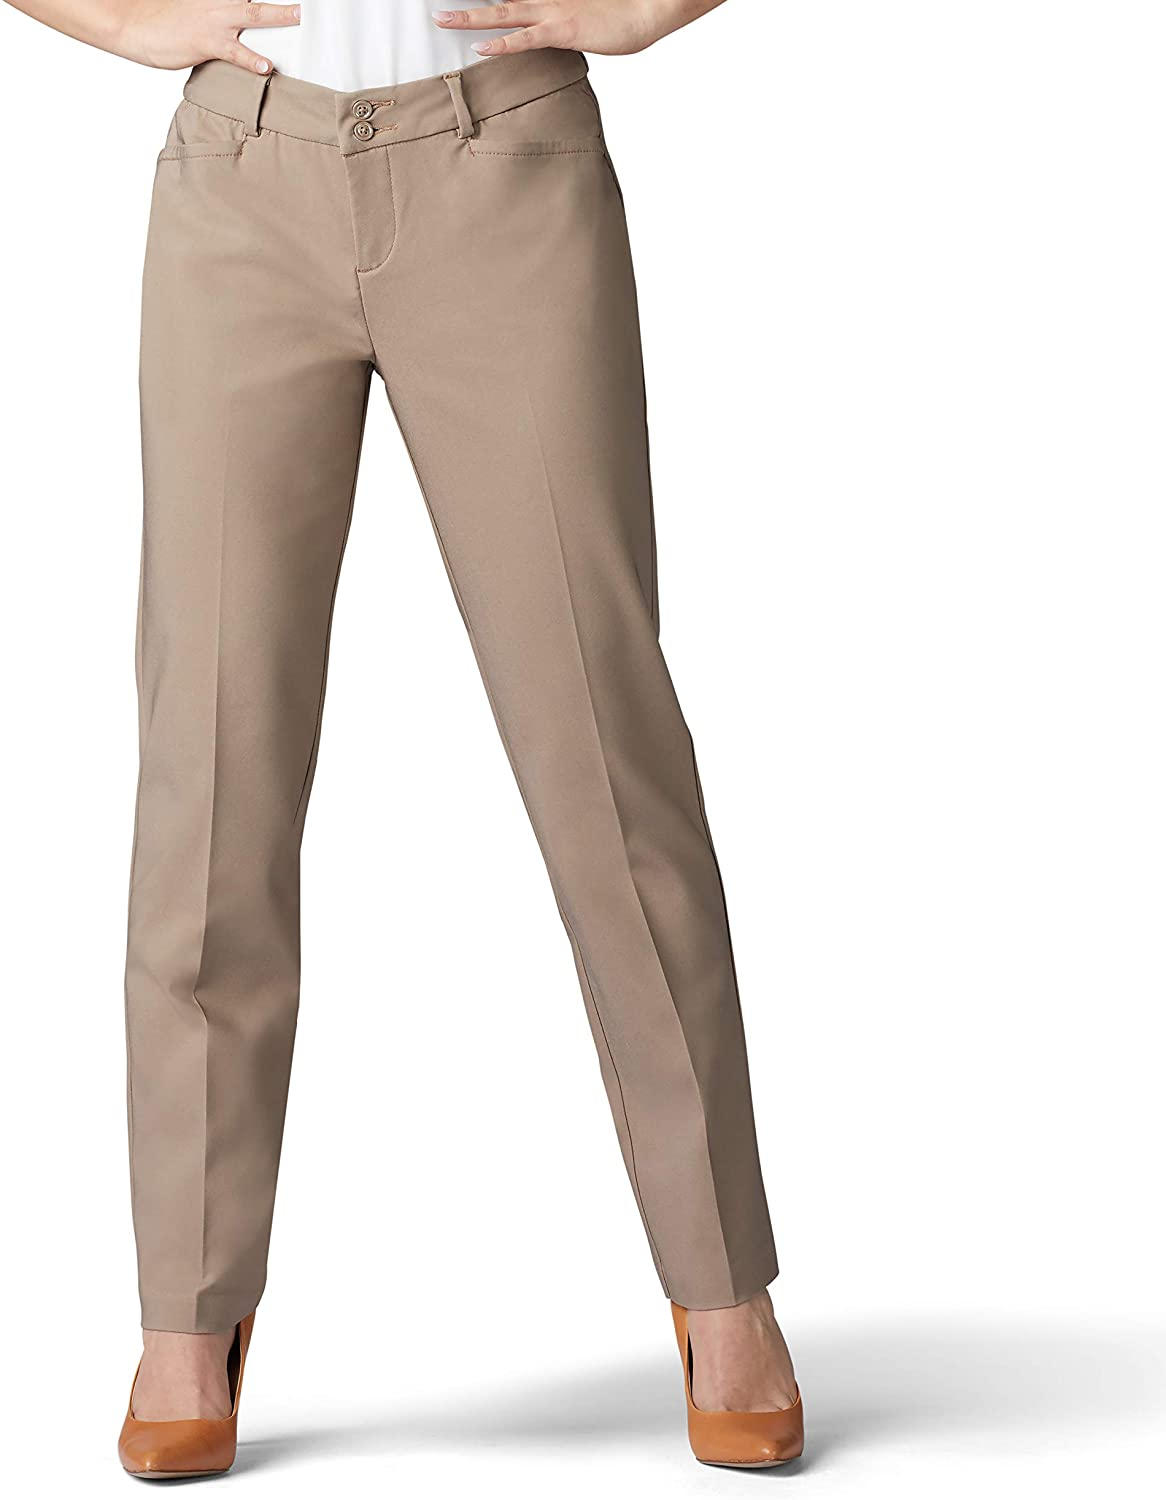 Lee Women's Petite Secretly Free Shipping New Shapes OFFicial mail order Regular Fit Leg Pant Straight